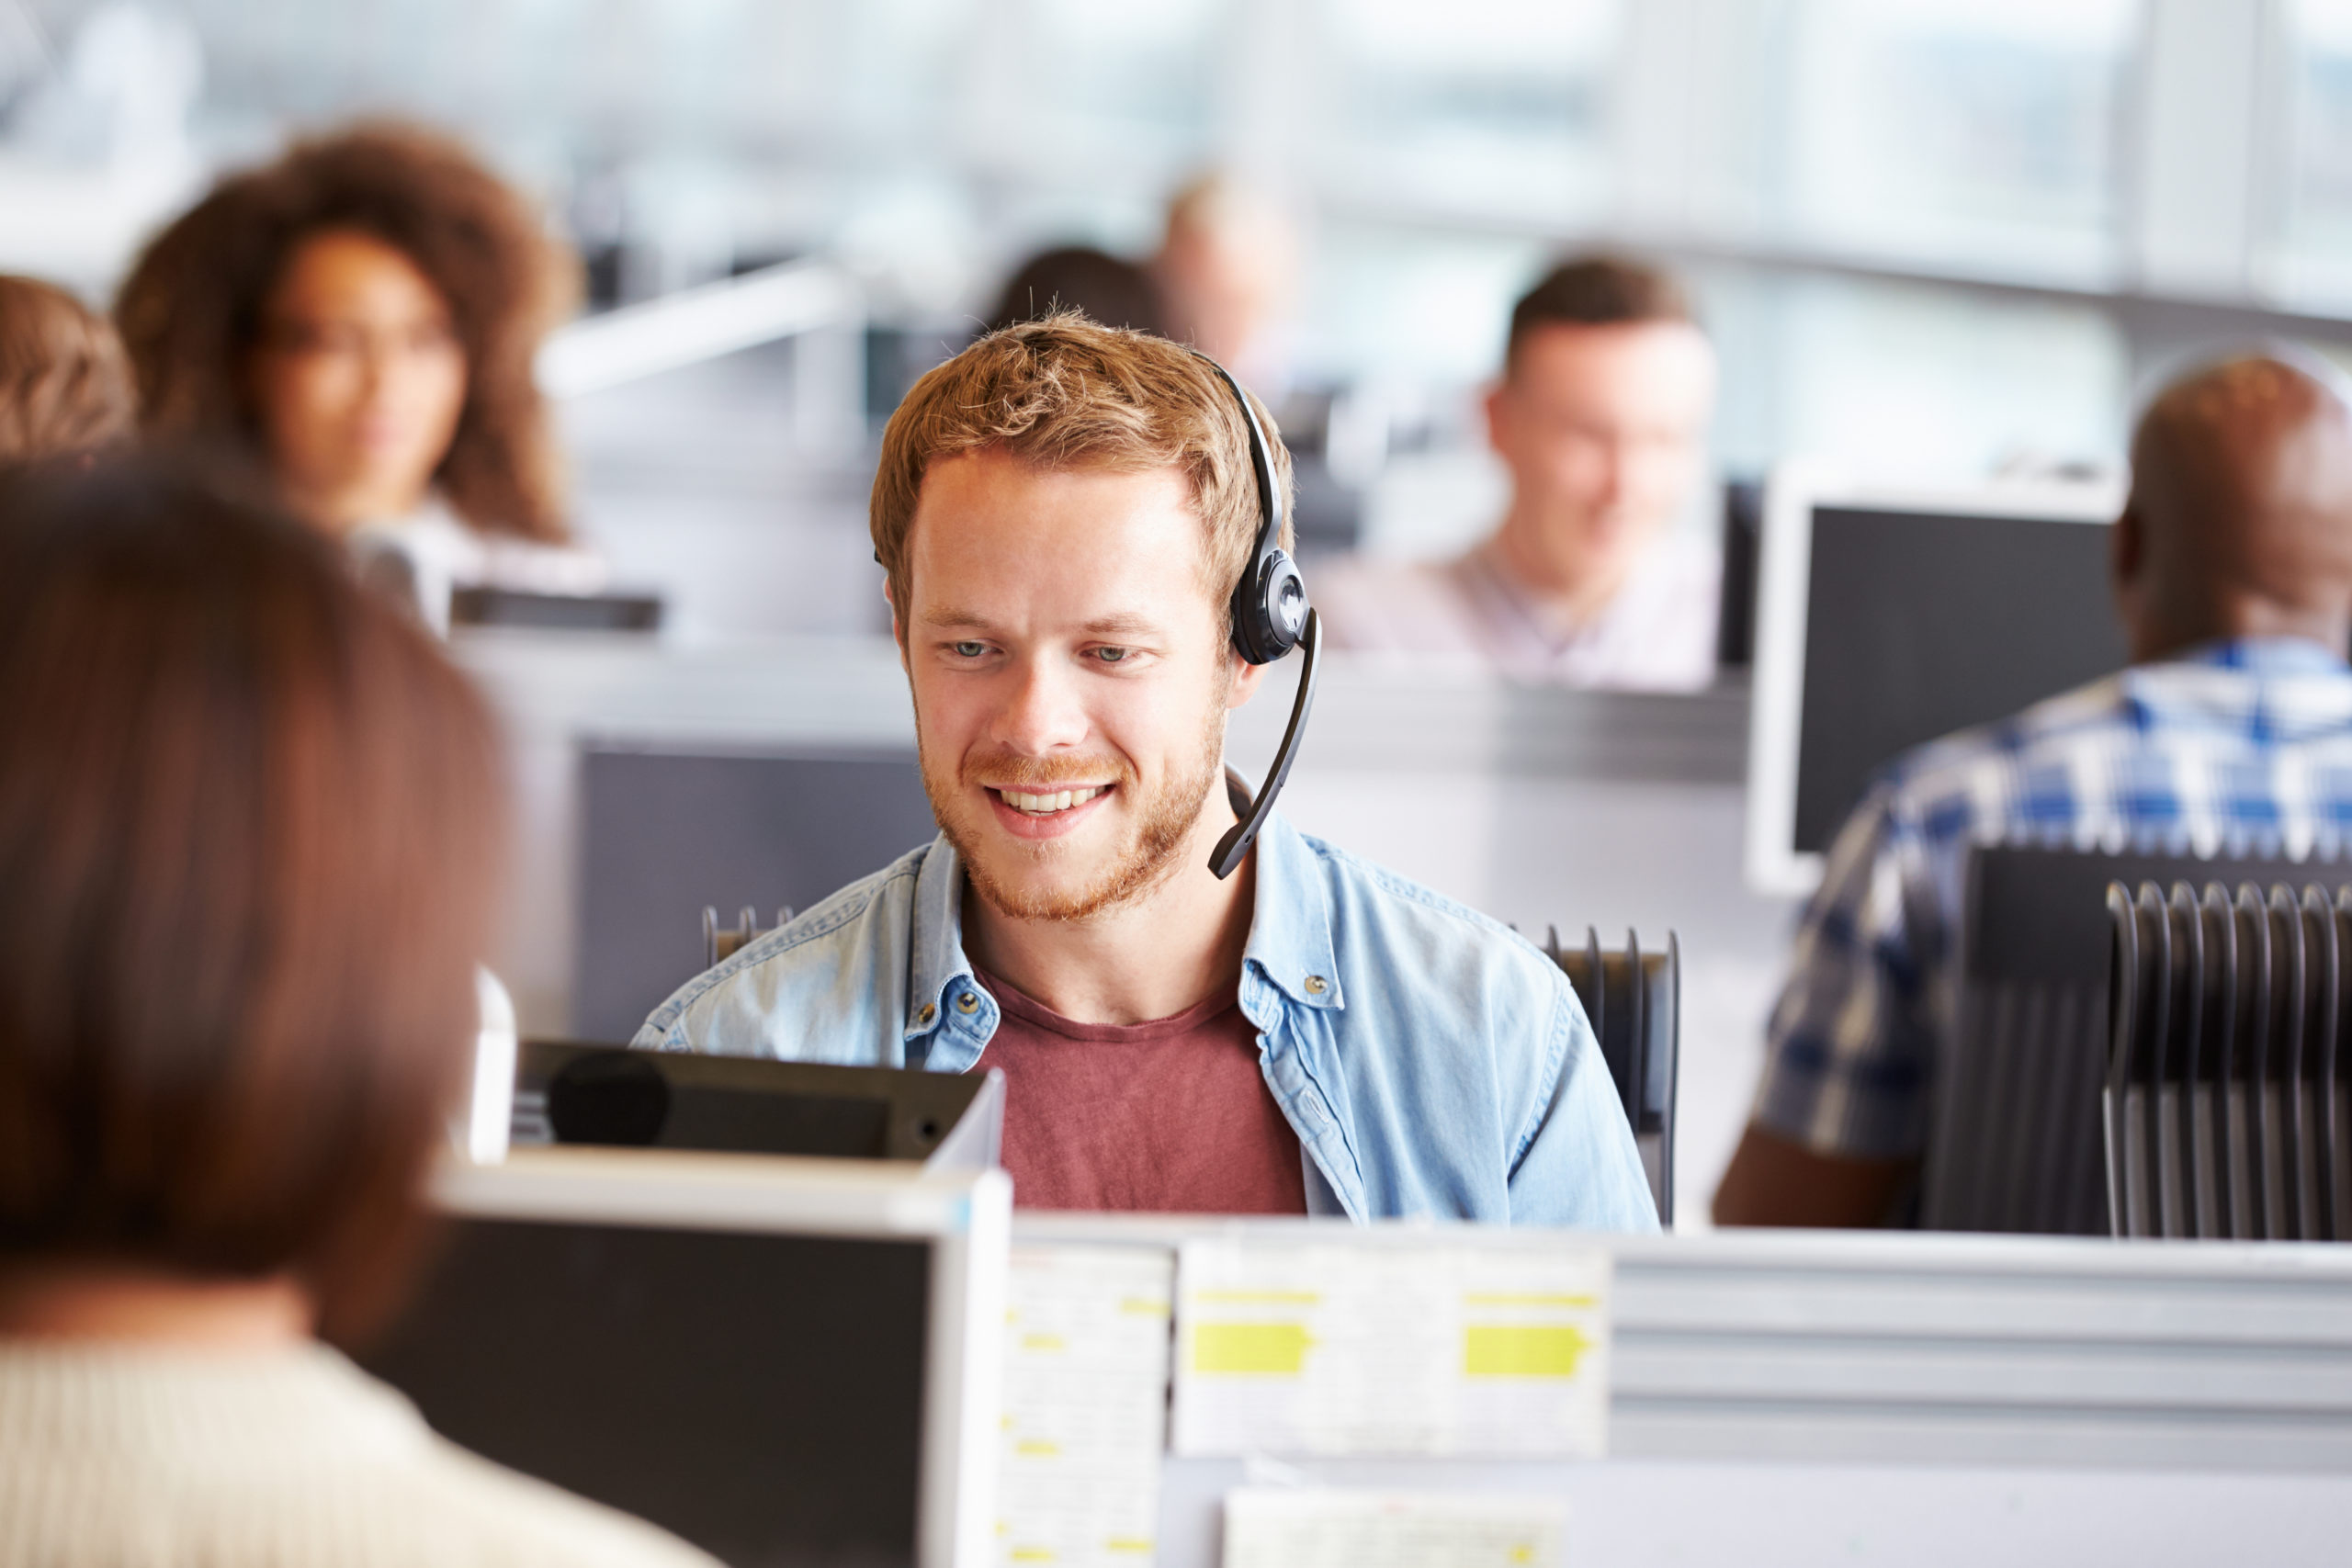 How to Reduce Hold Time in a Call Center Through the COVID-19 Crisis